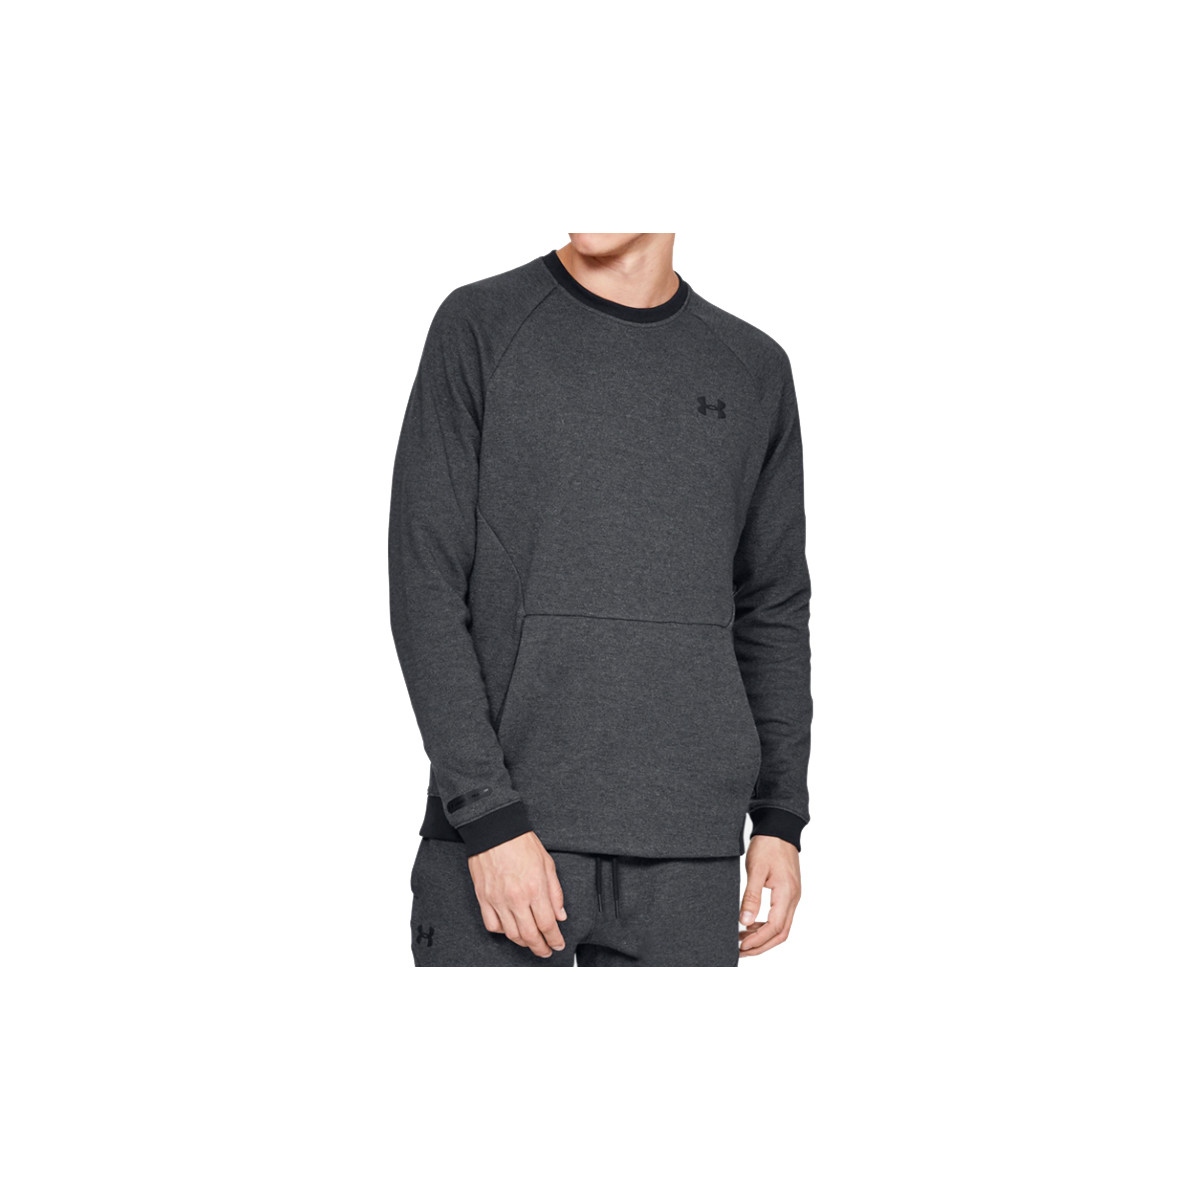 Sweatshirts Under Armour  Unstoppable 2X Knit Crew 1329712-001